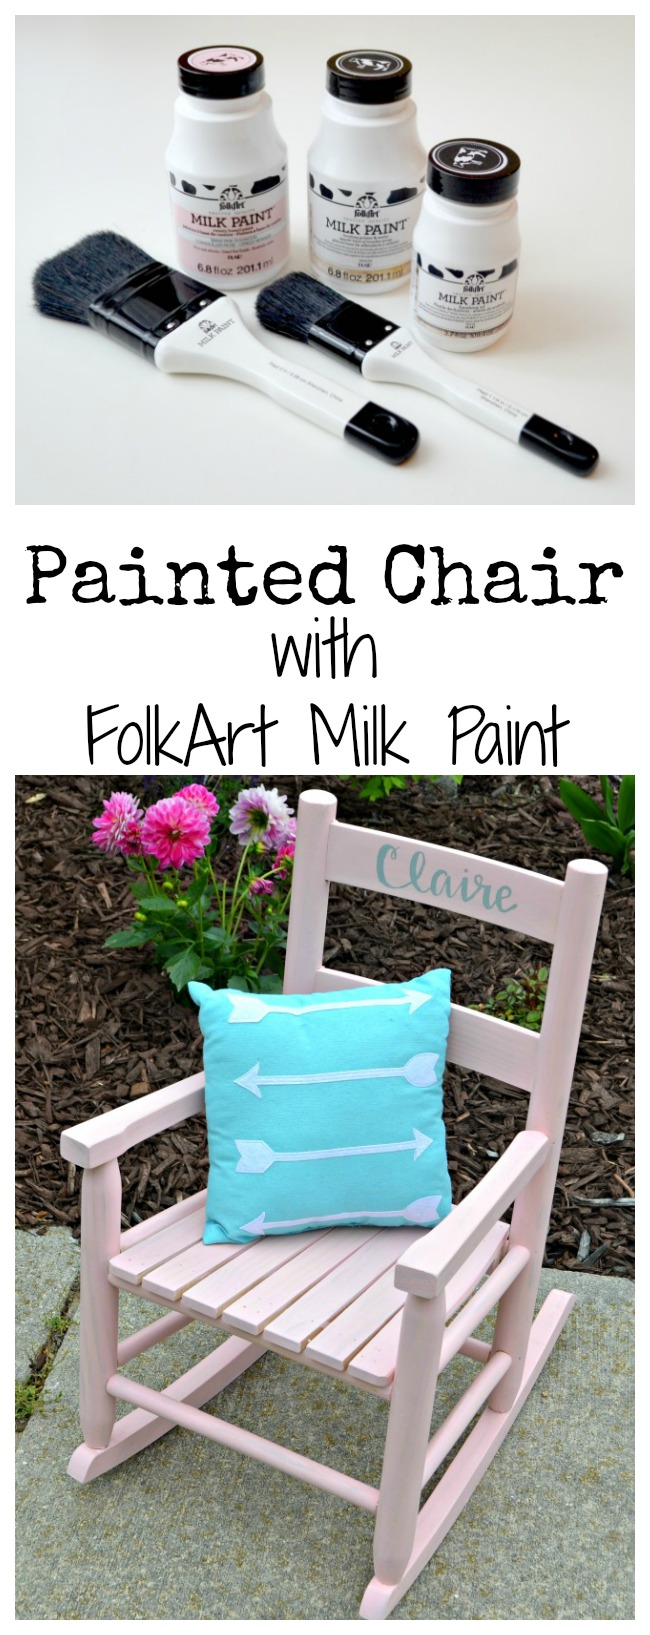 Folk Art Milk Paint Primer Or Oil